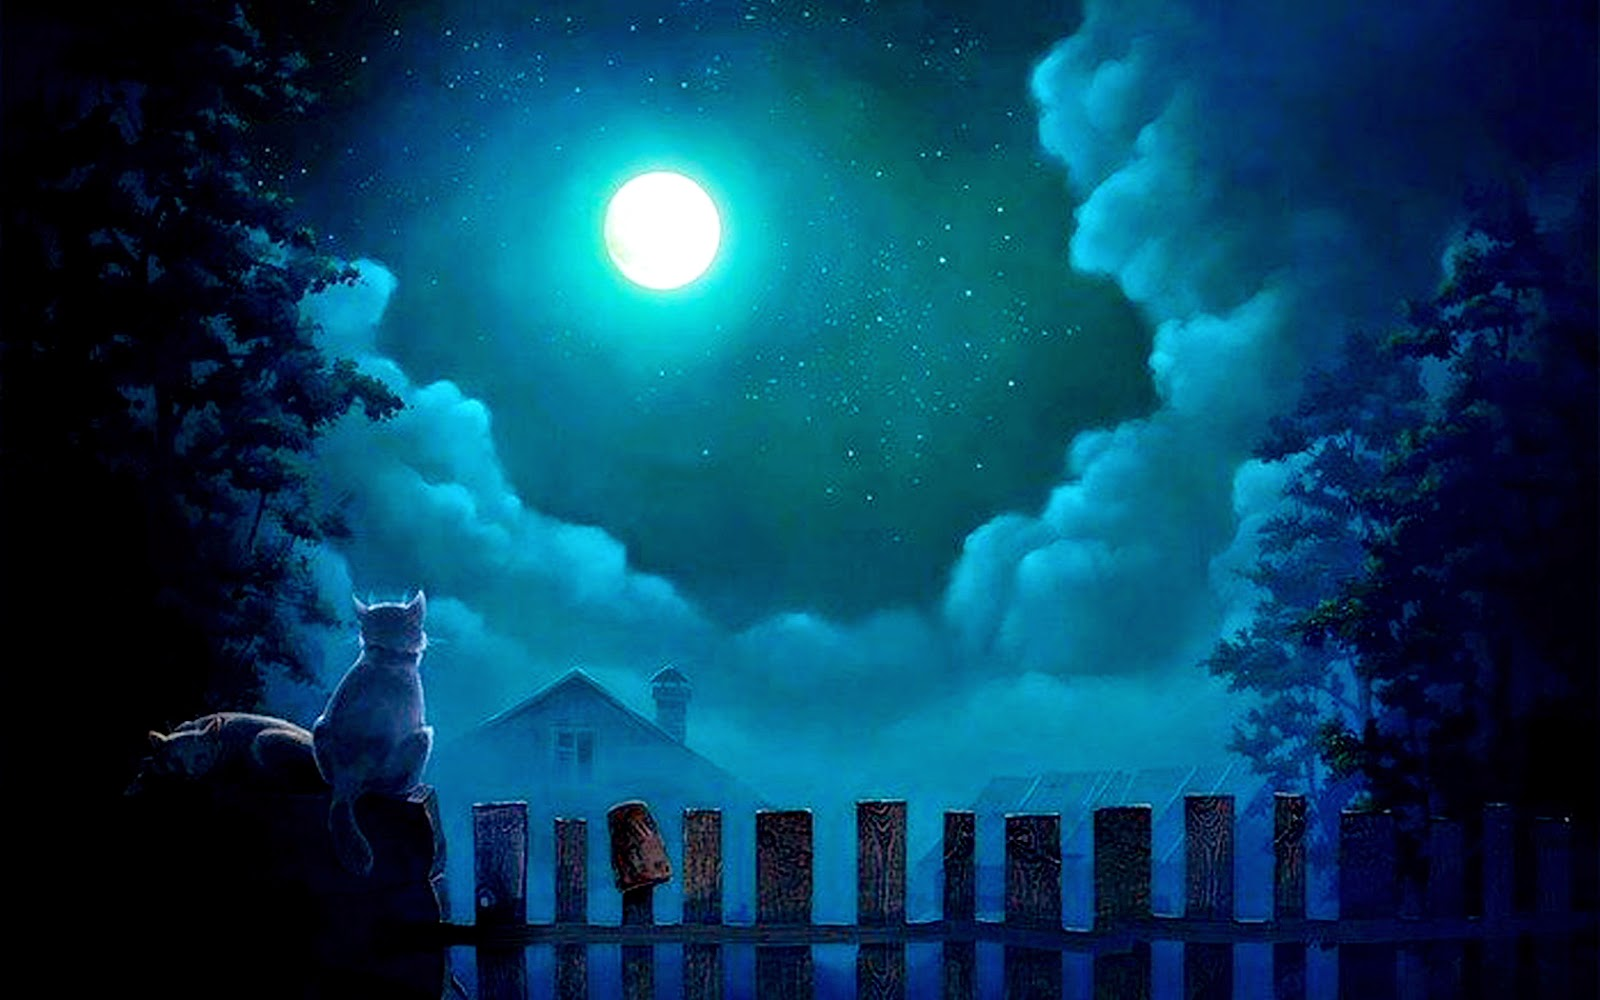 Moon-light-cat-image-at-night-wallpaper.jpg